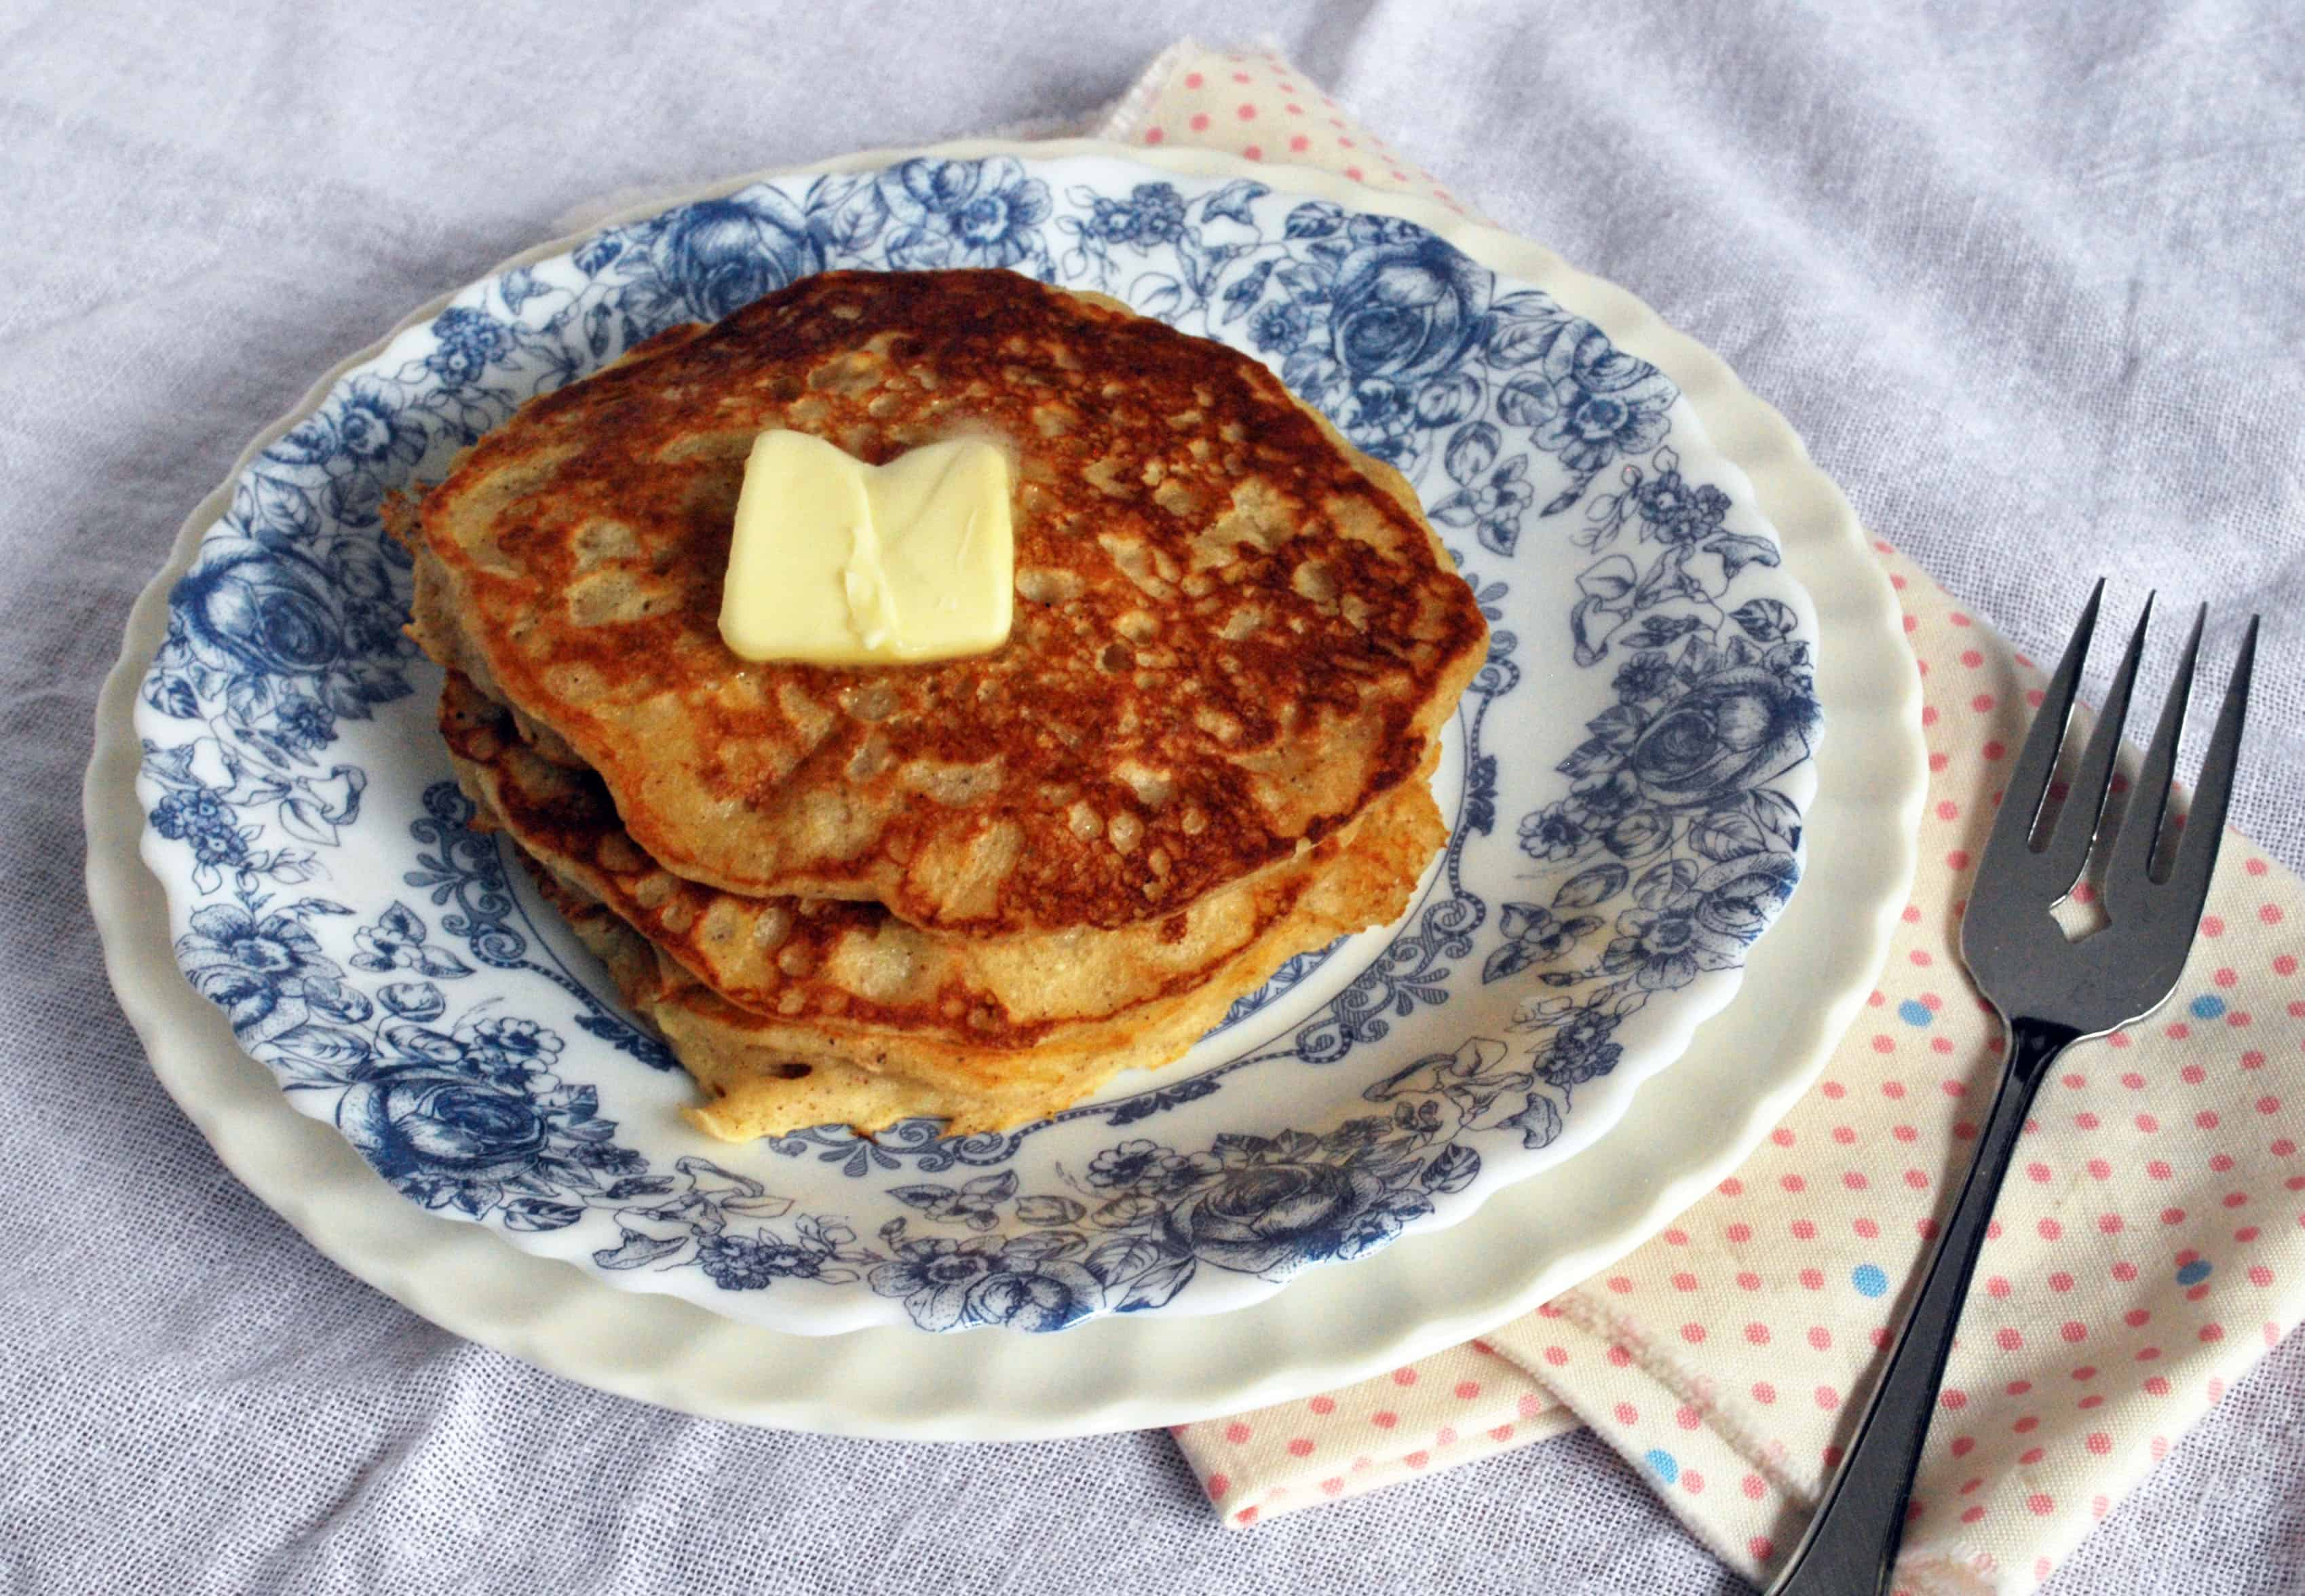 Oatmeal Cookie Pancakes on a plate with a napkin and fork